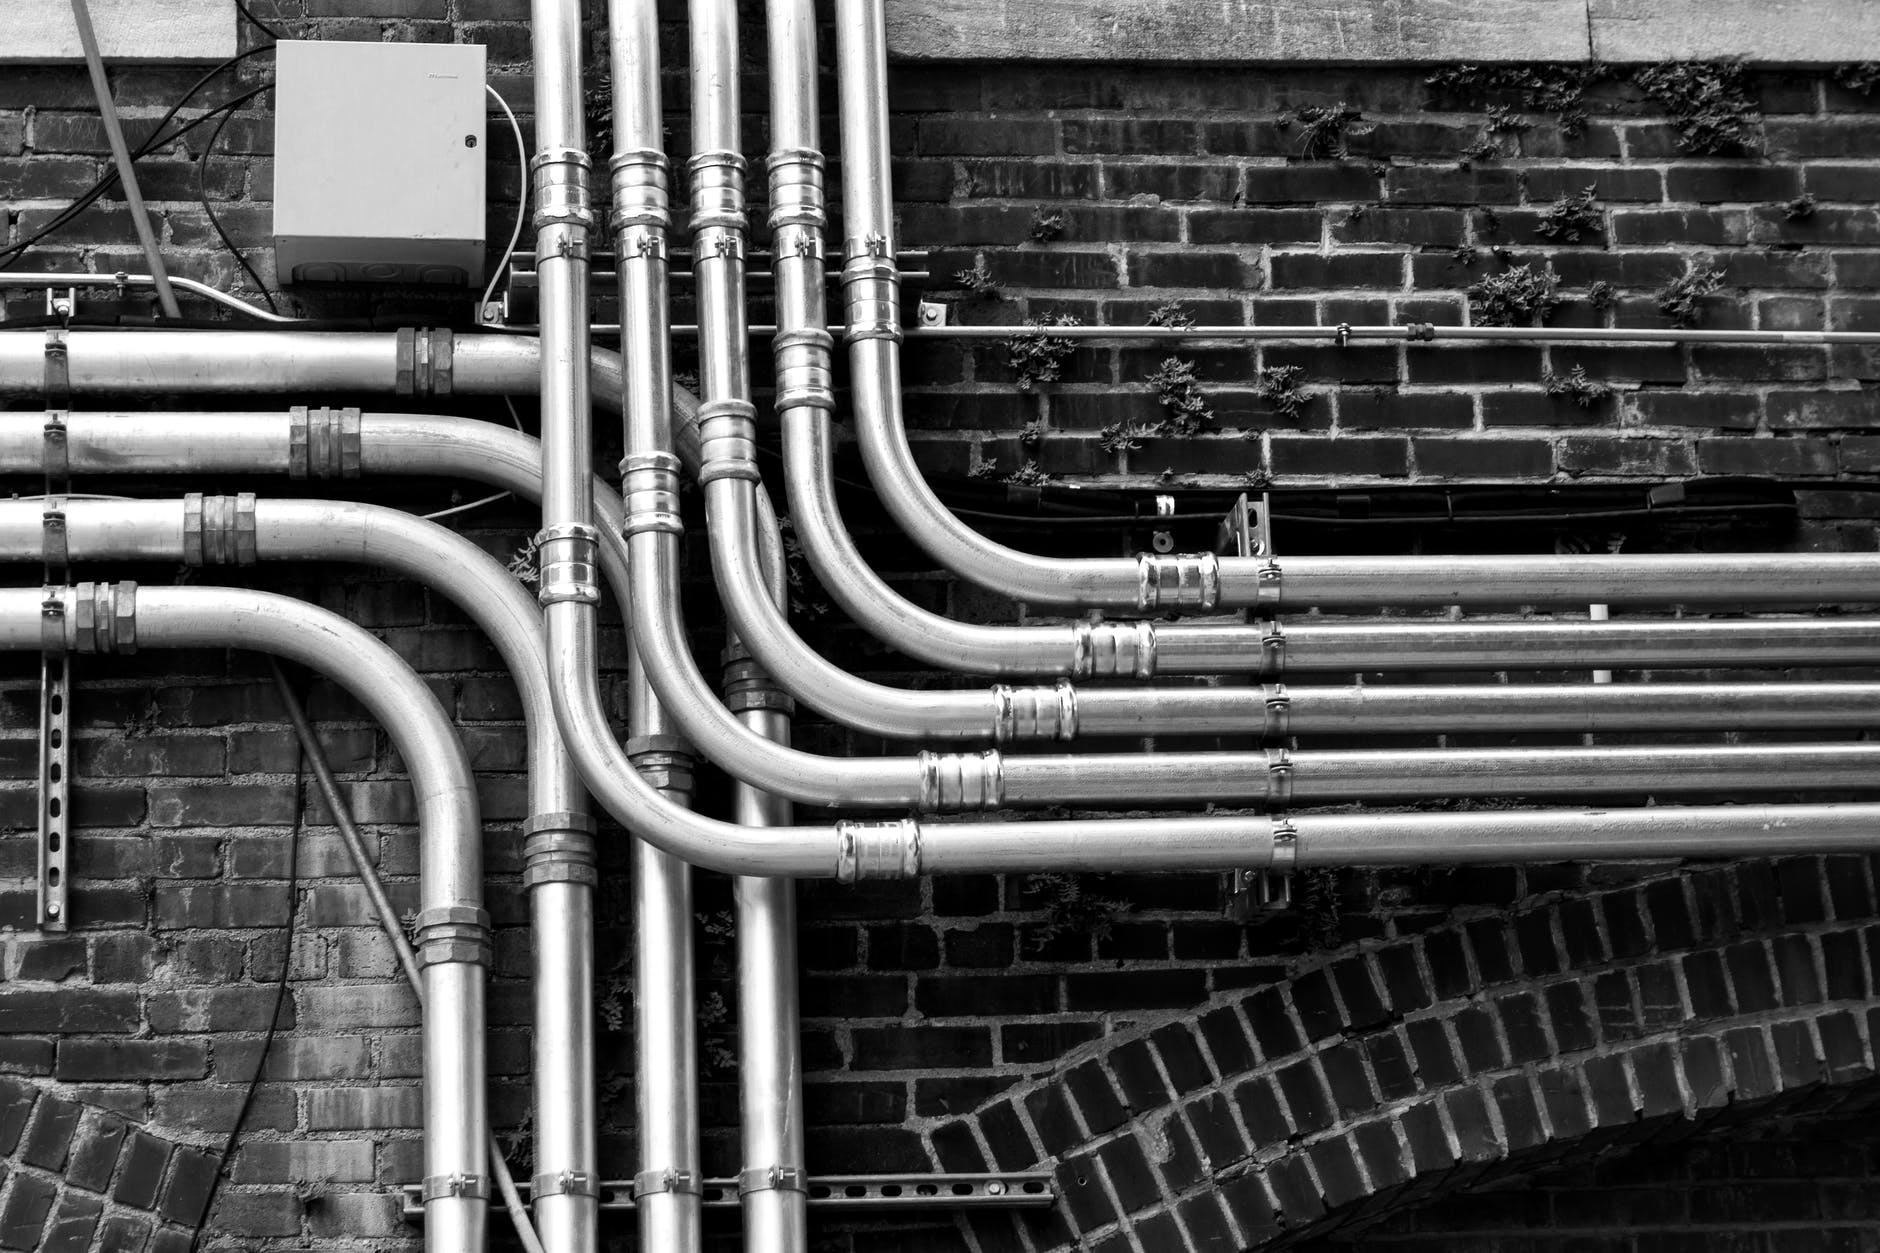 pipelines mounted on wall